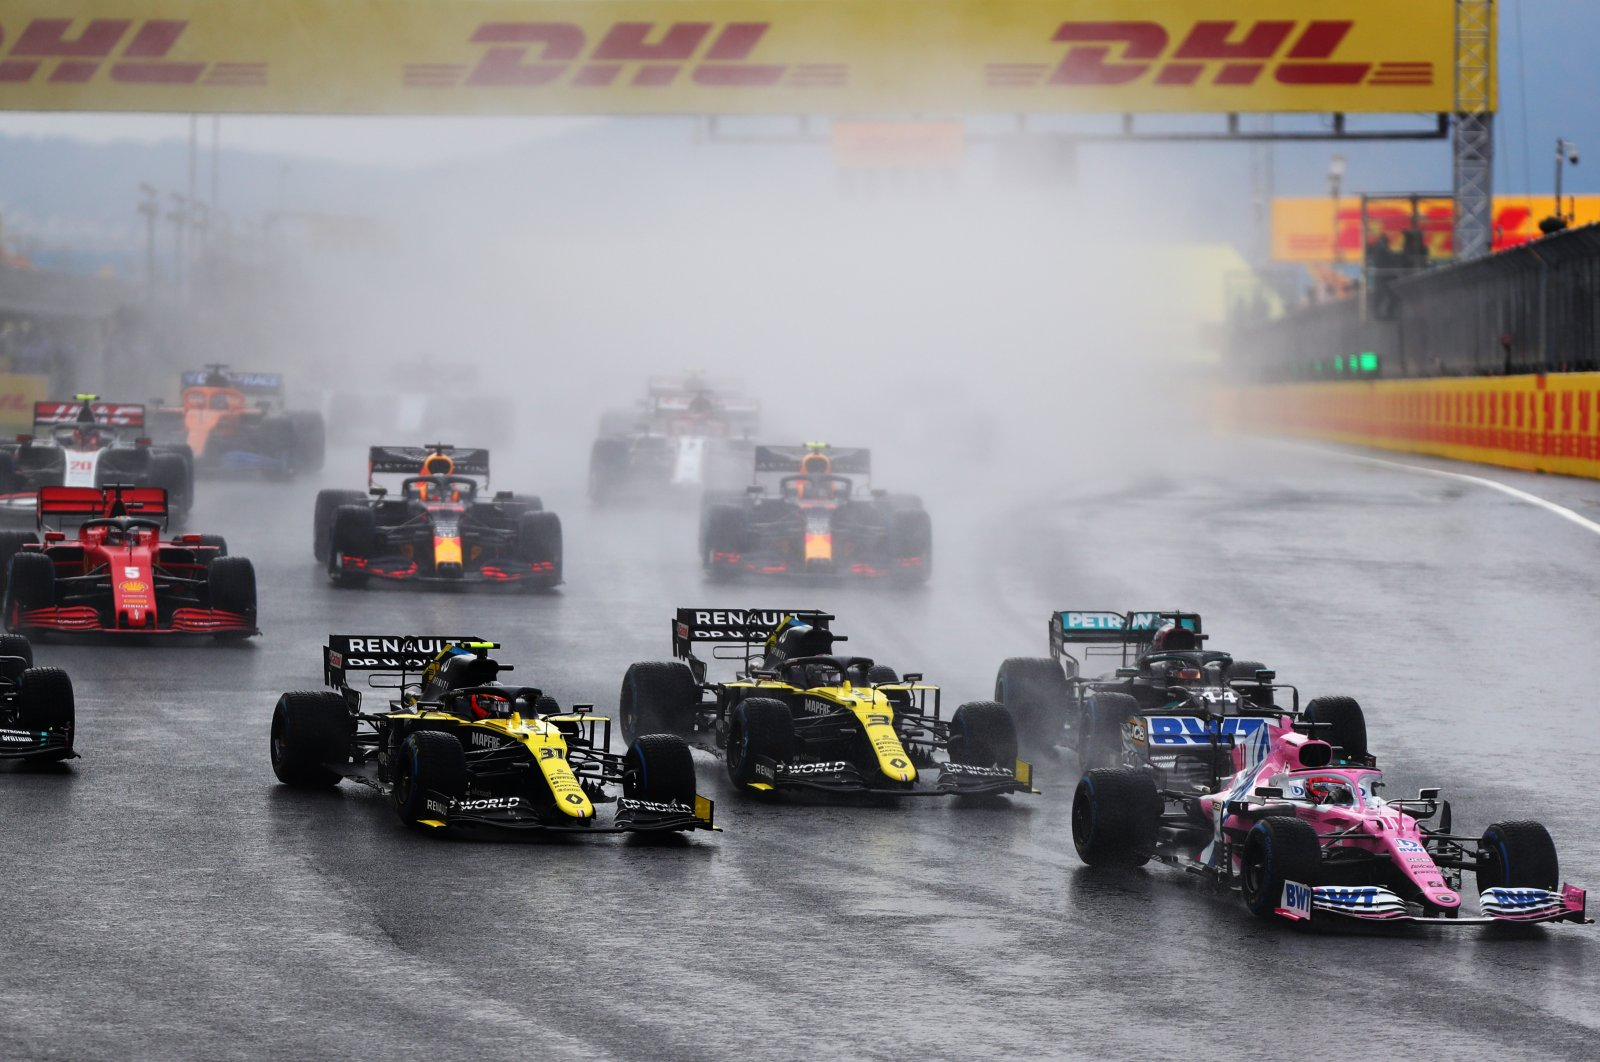 Drivers approach Turn One at the start of the F1 Grand Prix of Turkey at Intercity Istanbul Park, Istanbul, Turkey, Nov. 15, 2021. (Getty Images)